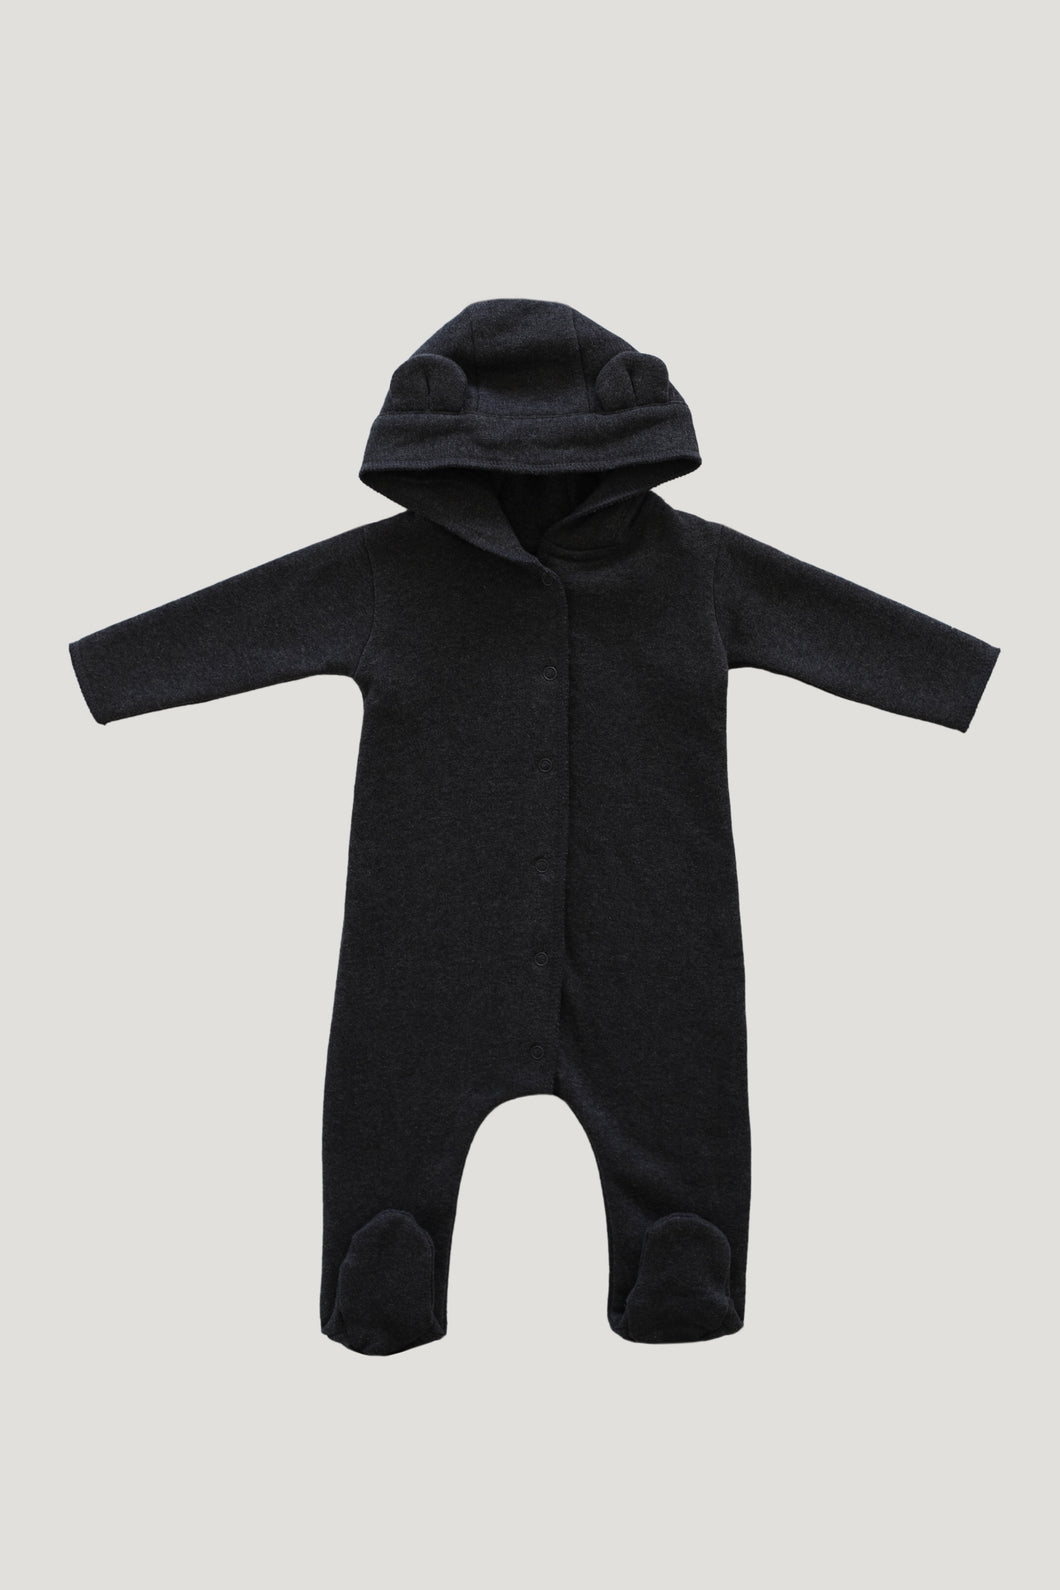 Jamie Kay bearsuit - dark grey